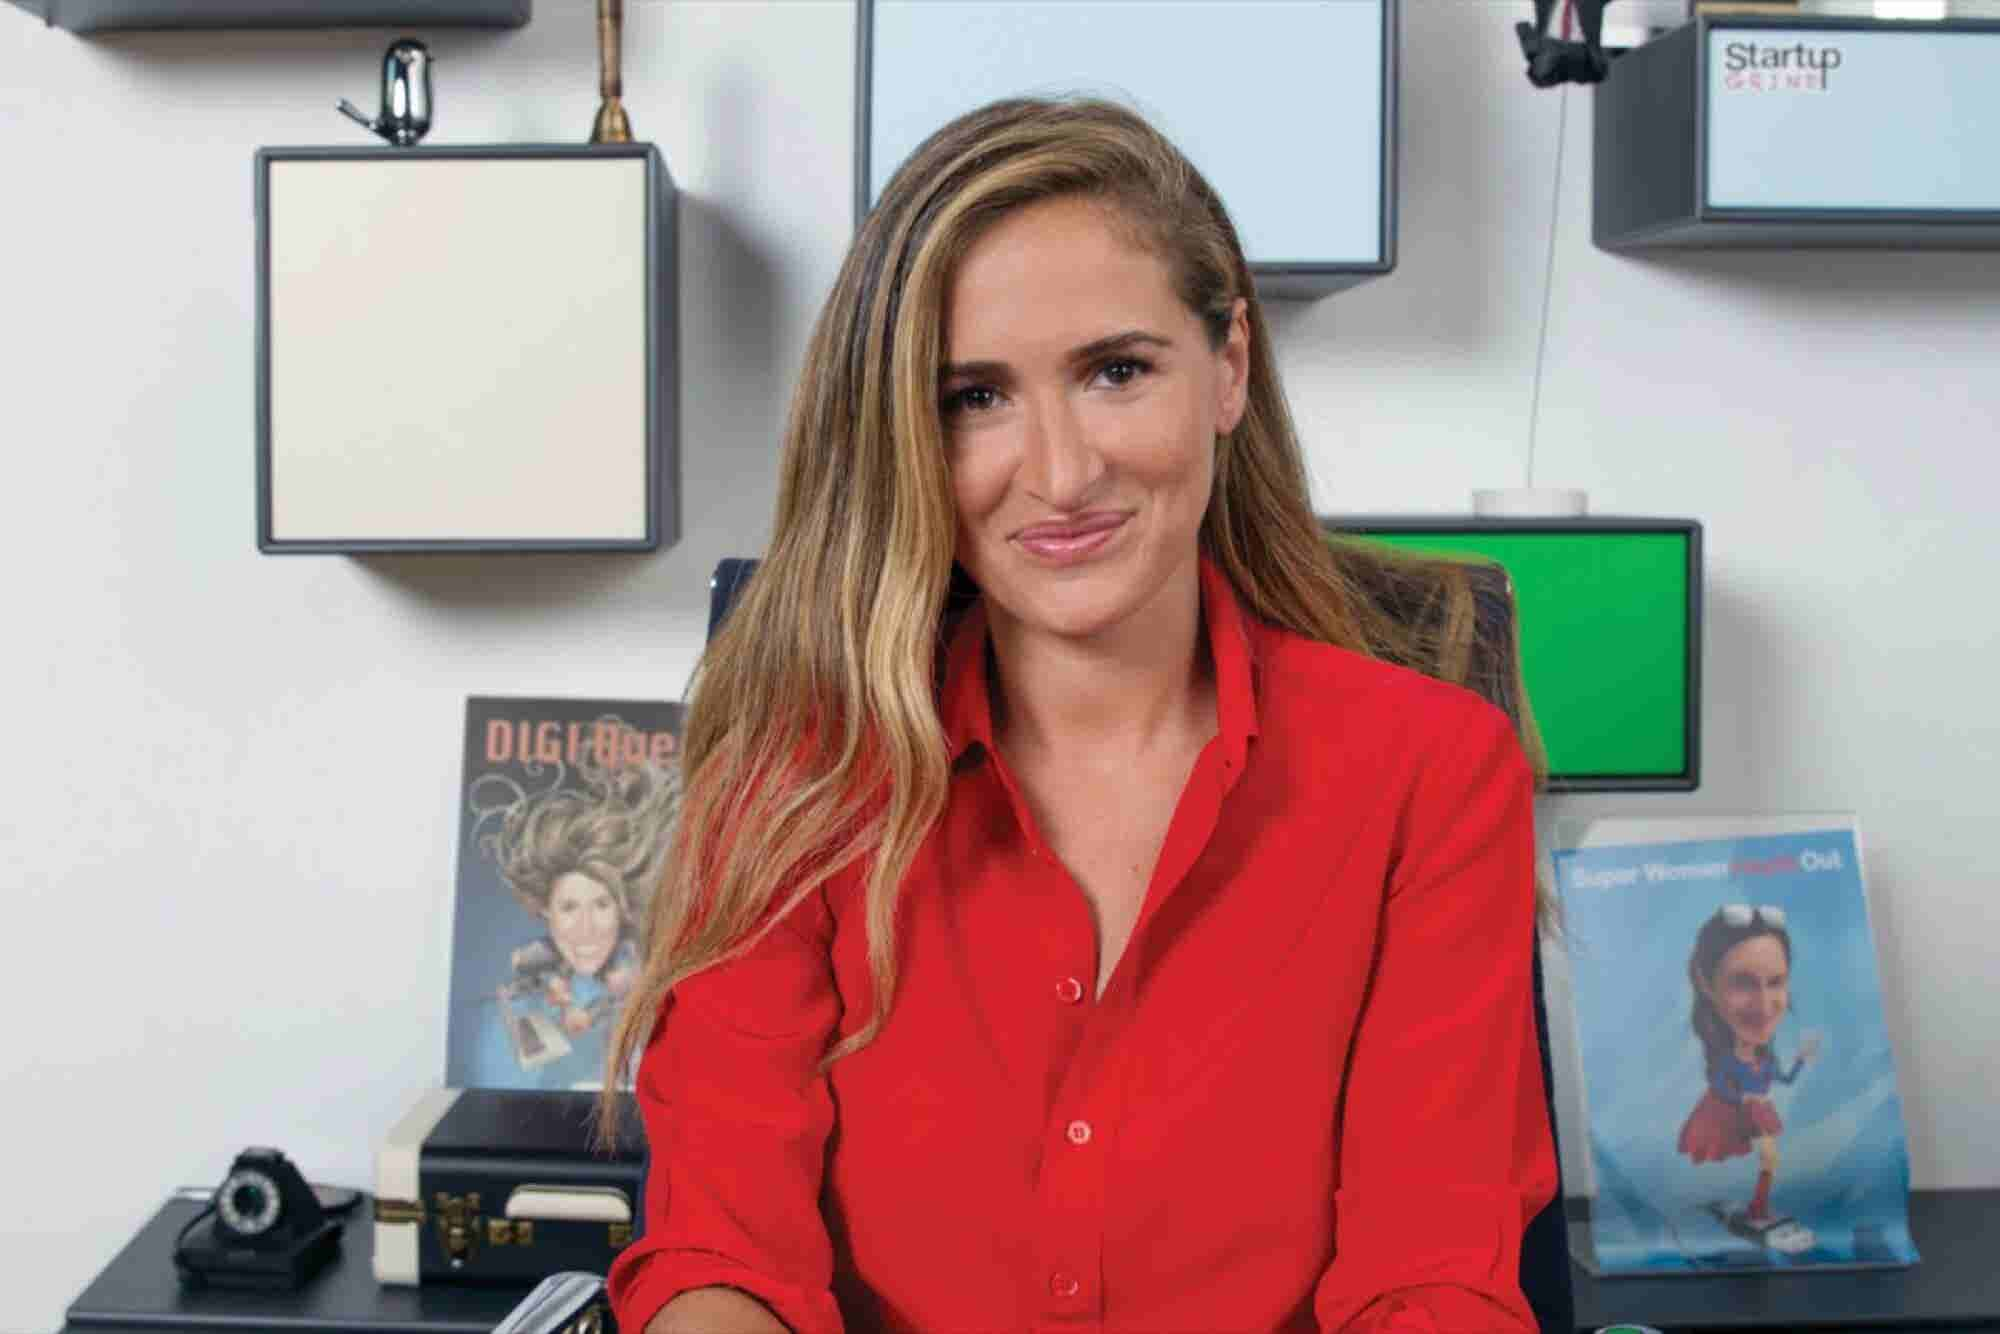 Entrepreneur Middle East's Achieving Women 2018: Tanaz Dizadji, Founder And CEO, Brand Ripplr